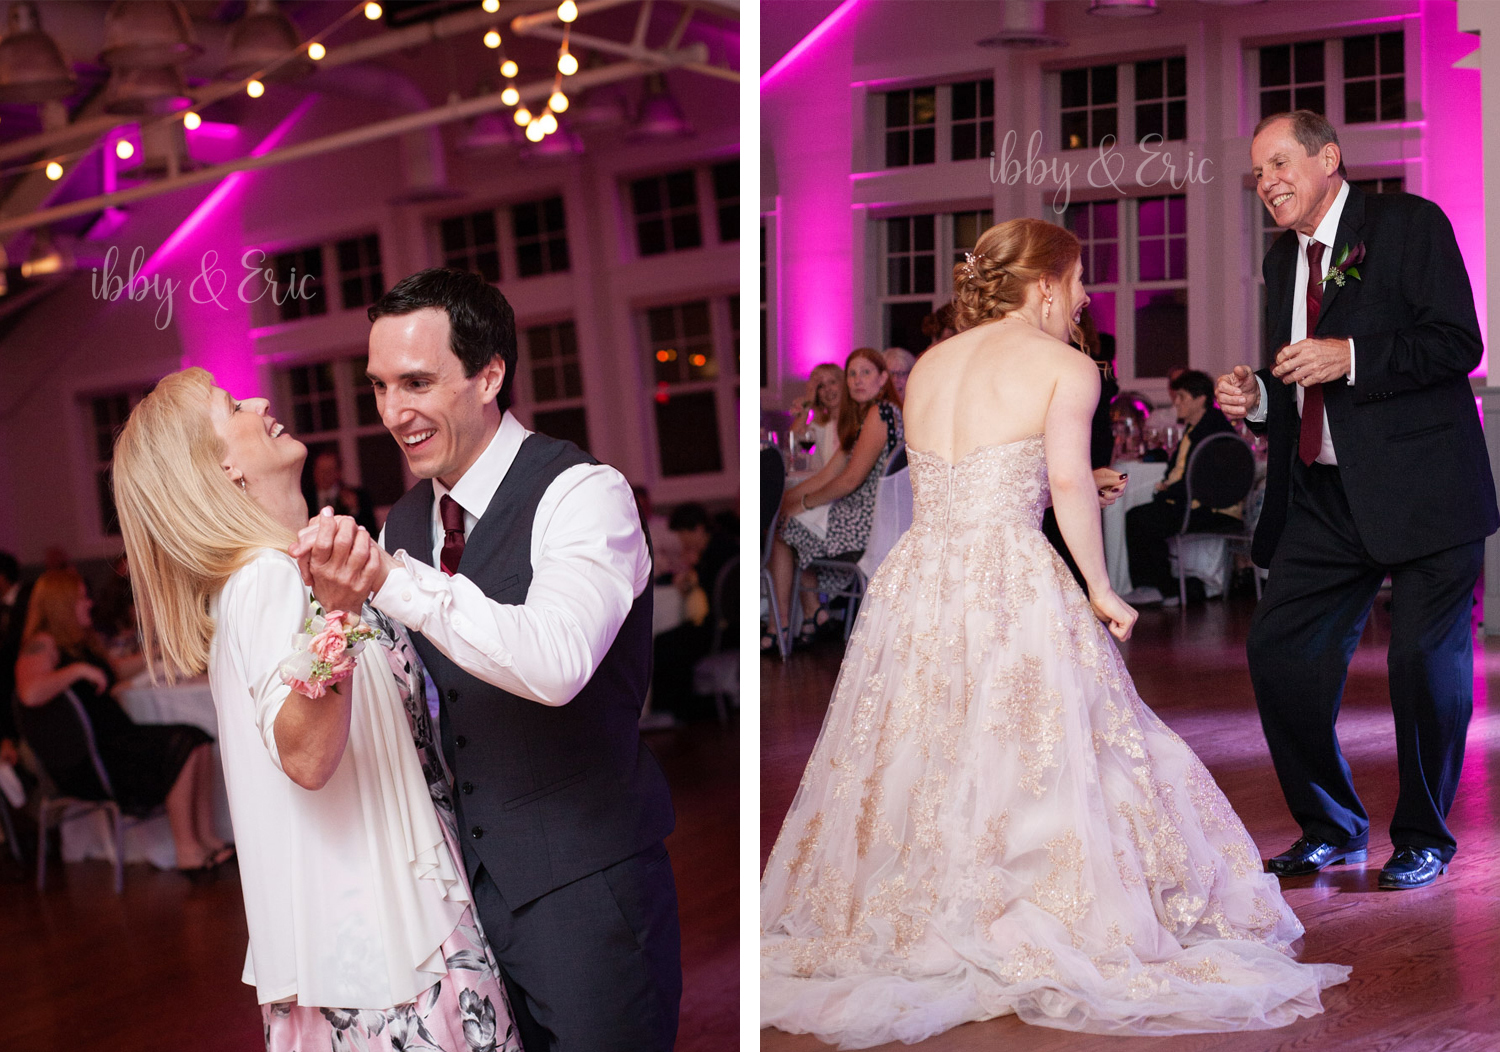 The happy bride & groom during each of their parent dances.